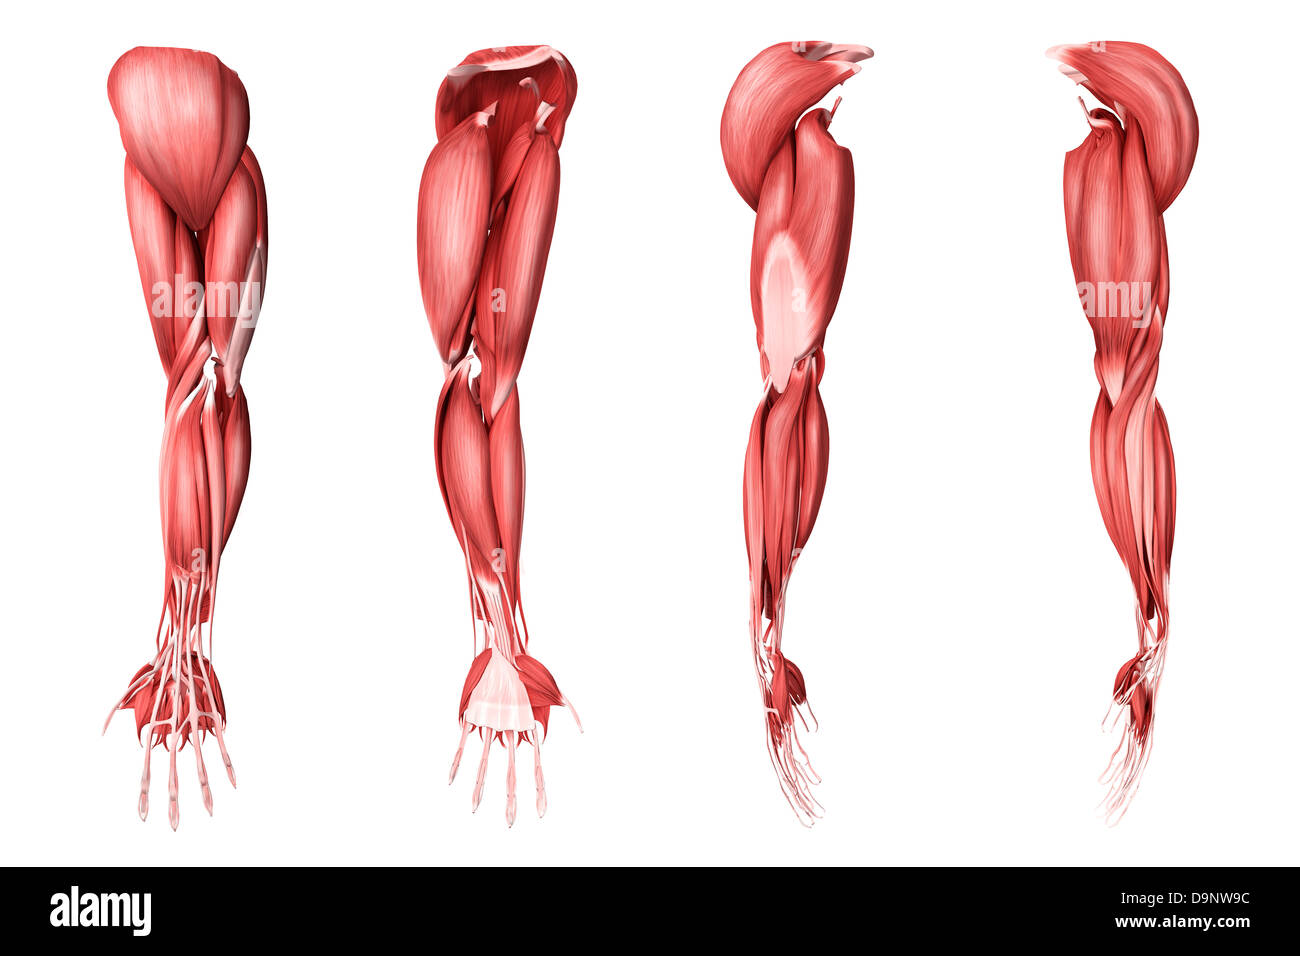 Anatomy of the human arm